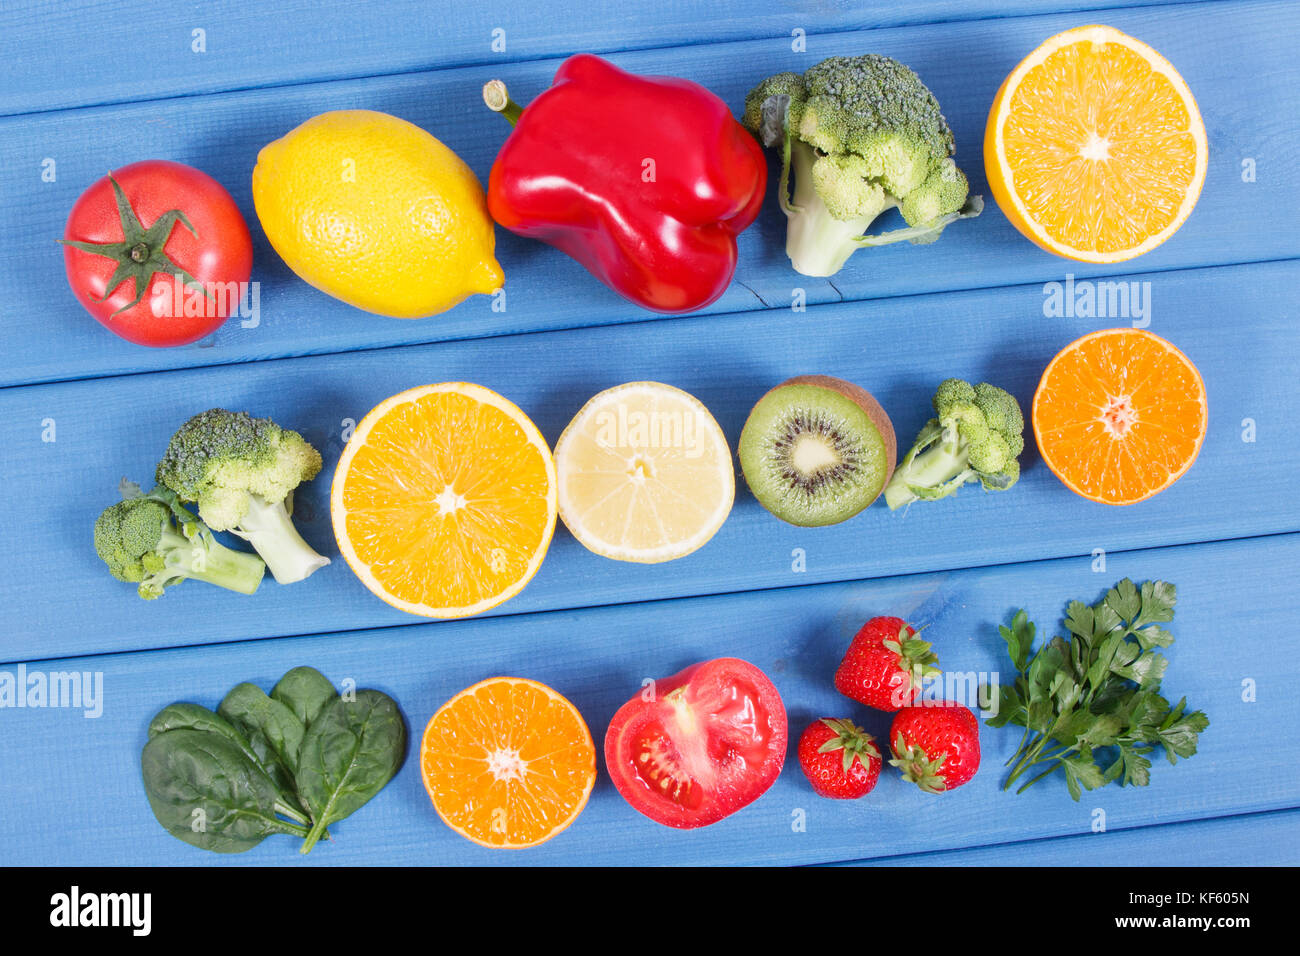 Healthy ripe fruits and vegetables containing vitamin c natural healthy ripe fruits and vegetables containing vitamin c natural minerals and dietary fiber healthy nutrition concept workwithnaturefo